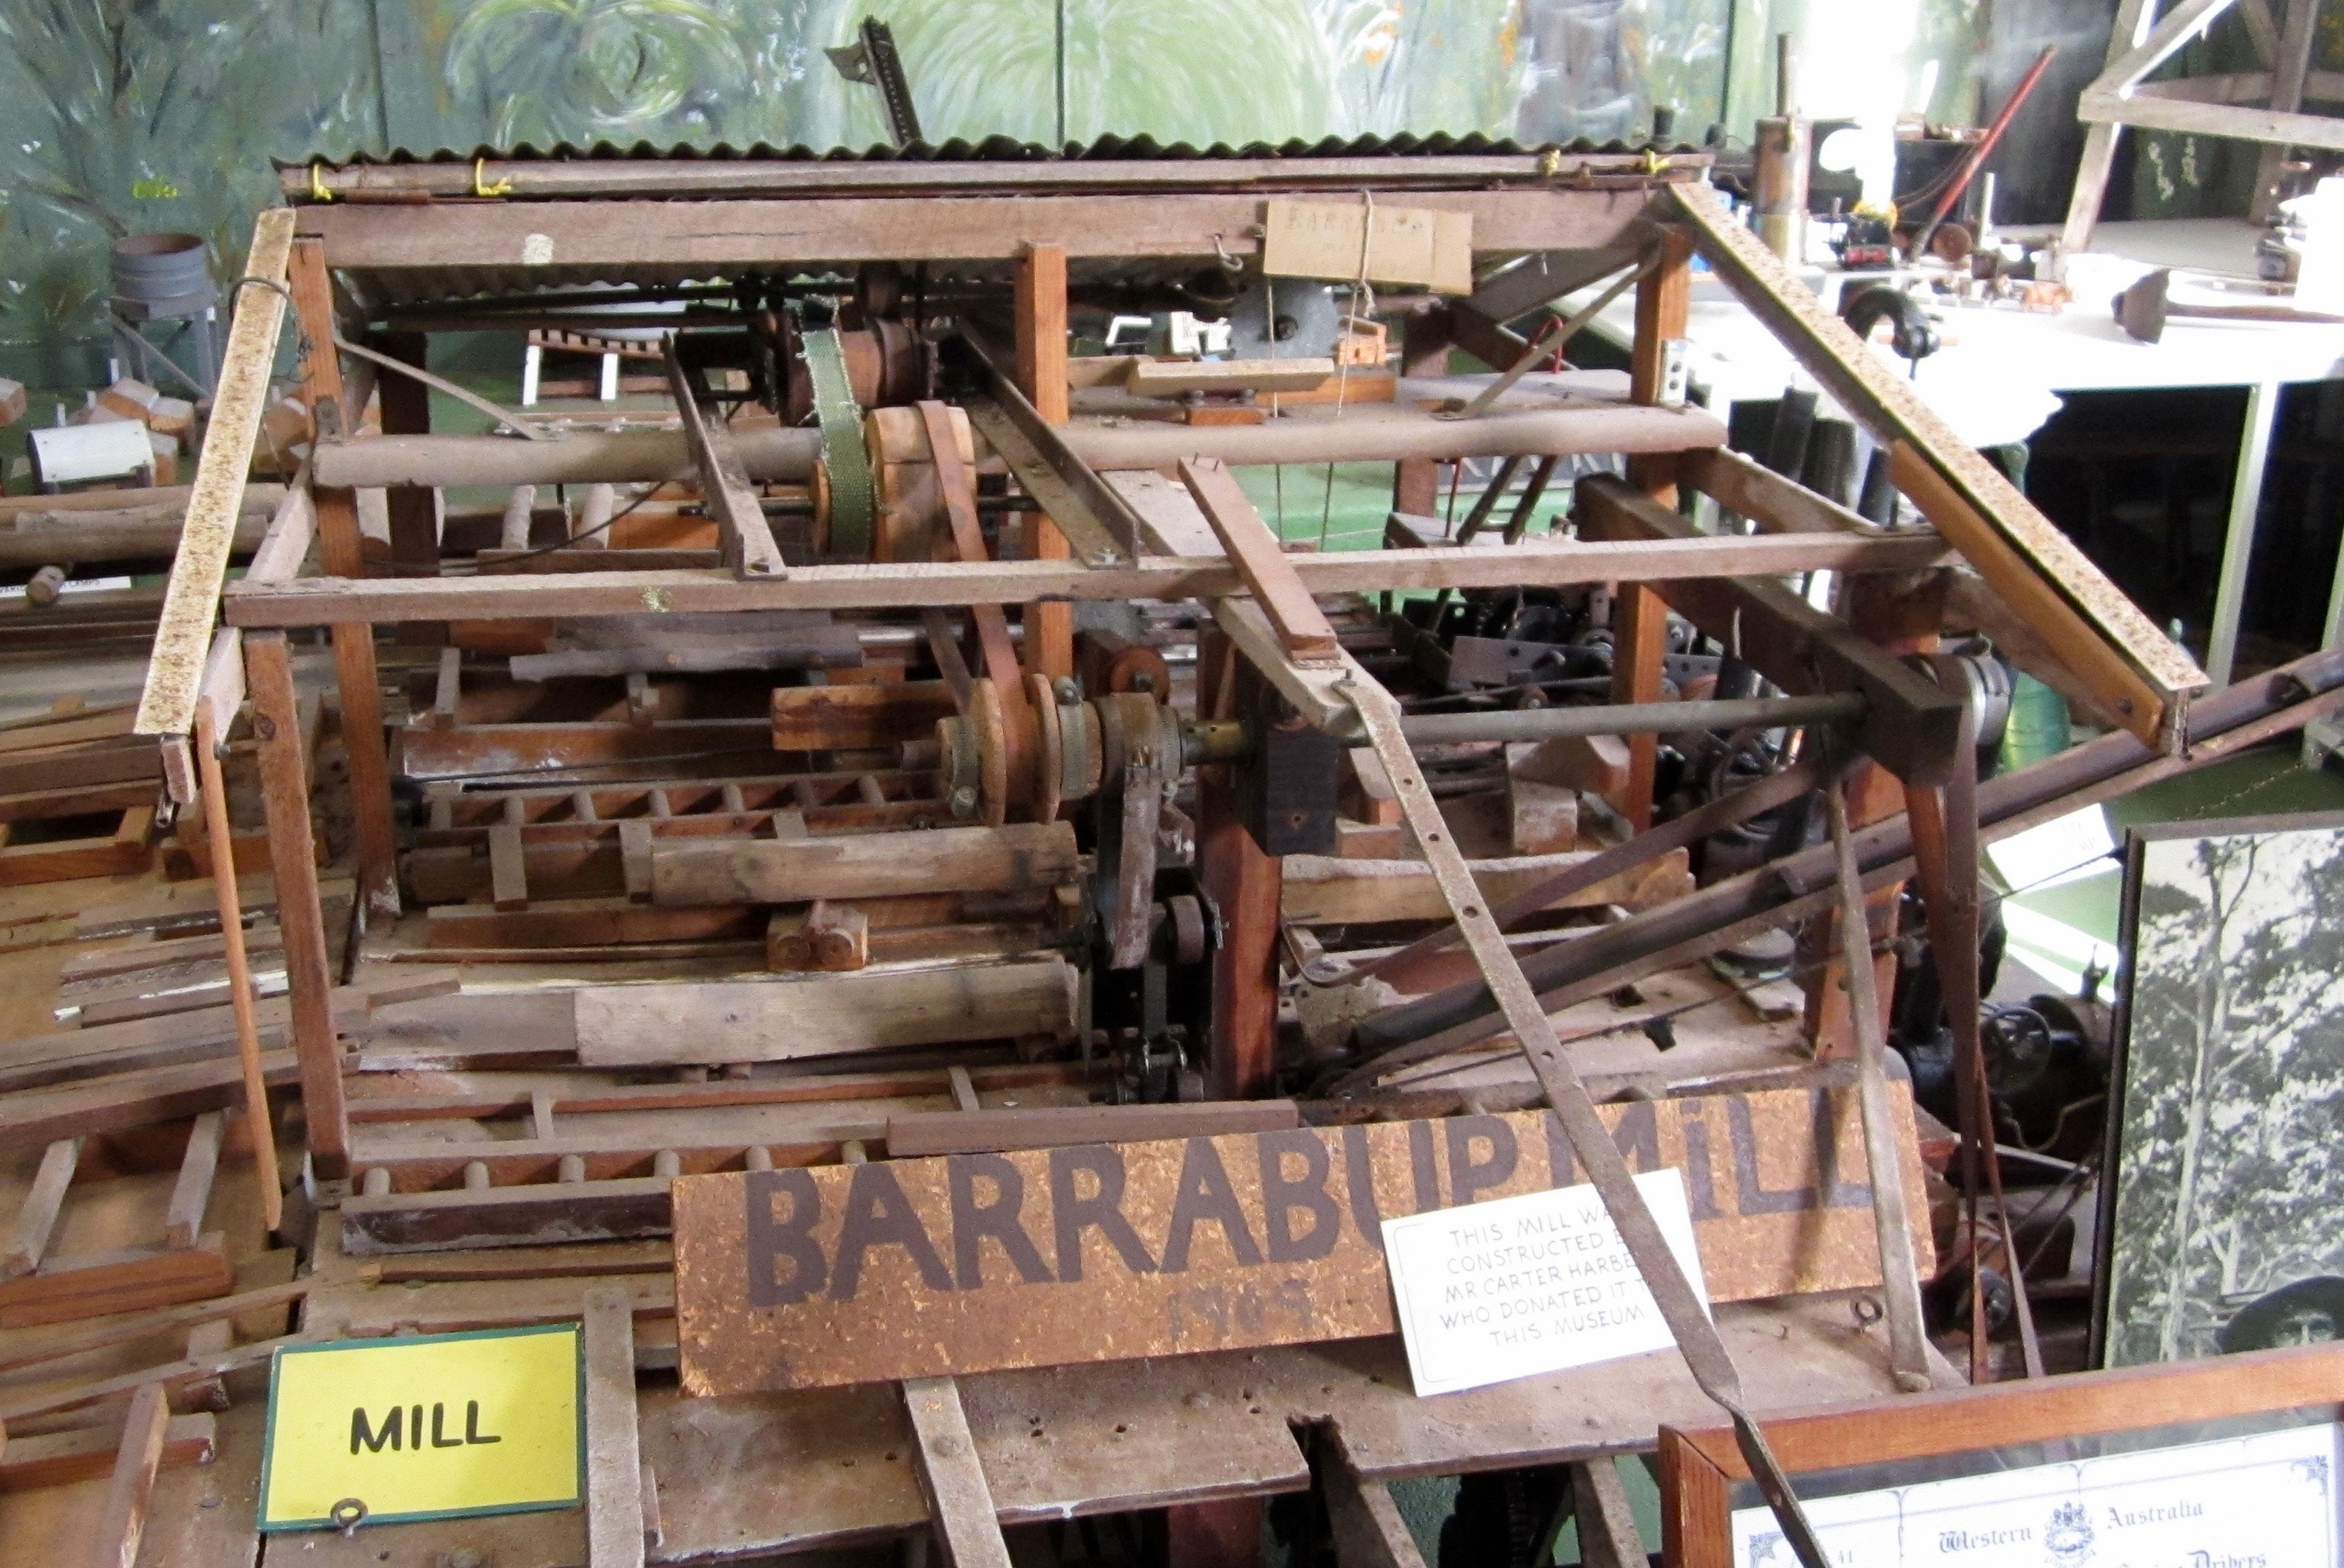 Barrabup Mill model, Busselton Museum